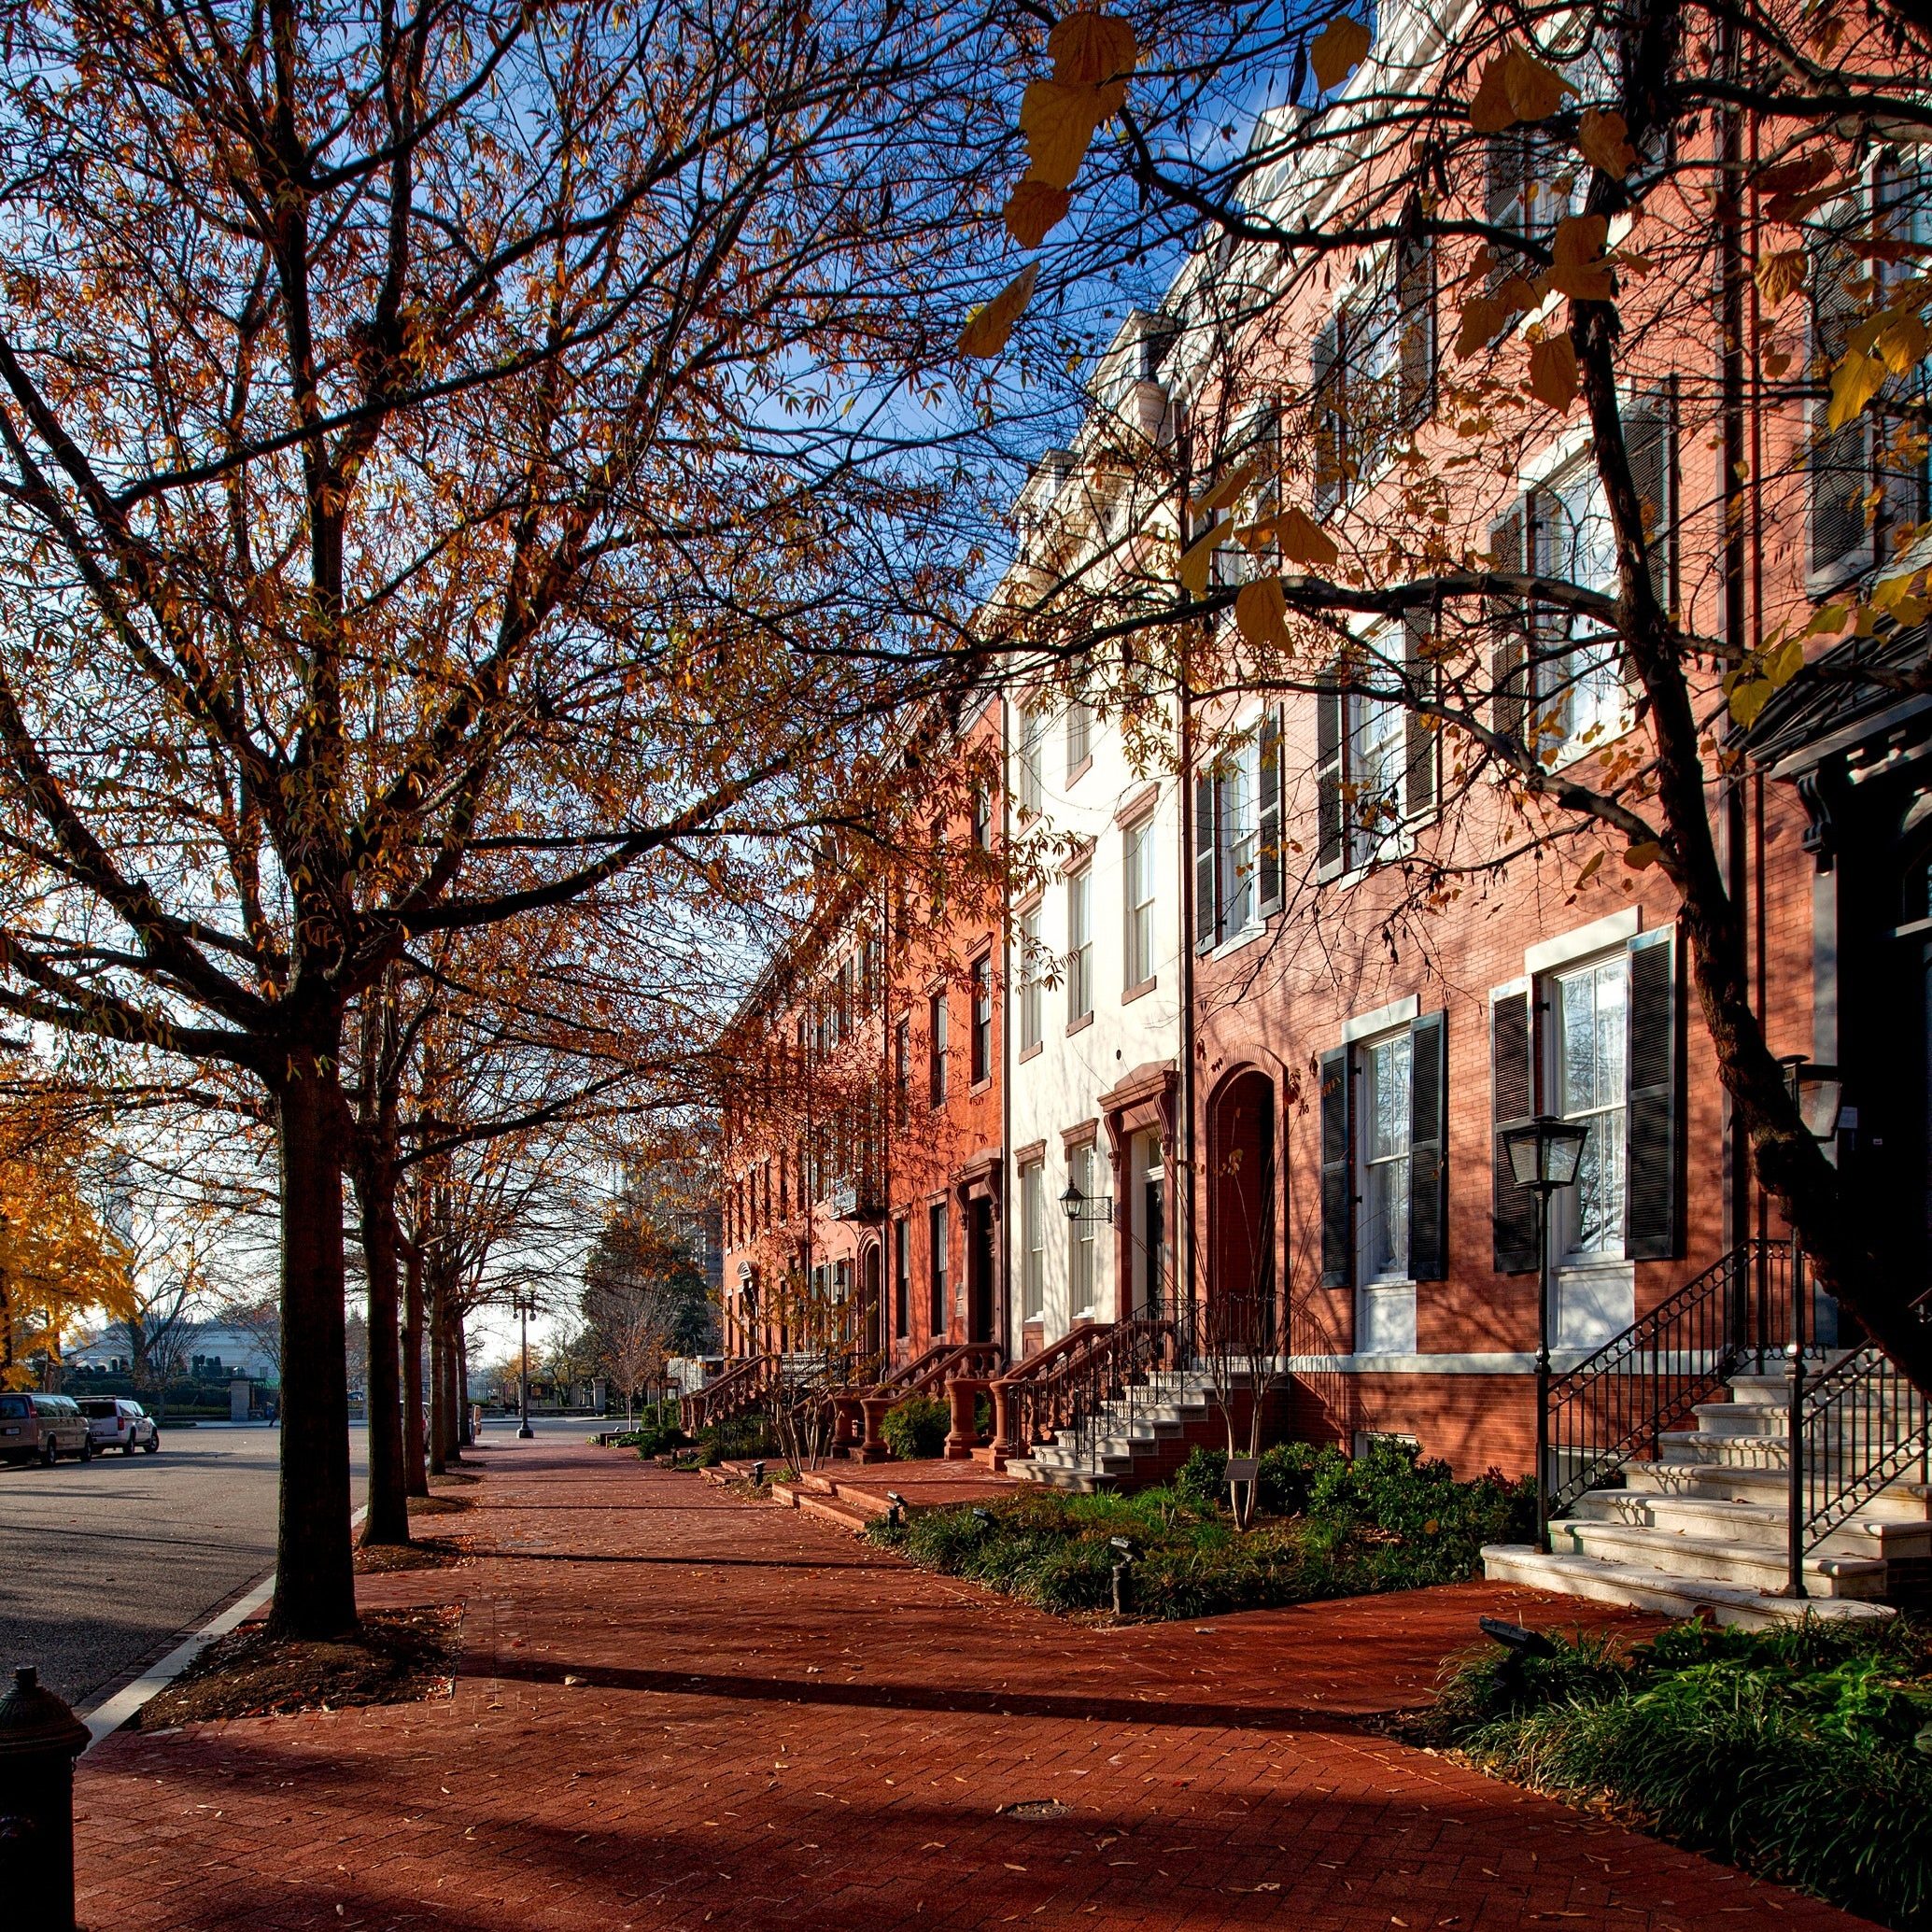 architecture-autumn-brownstones-161768.jpg